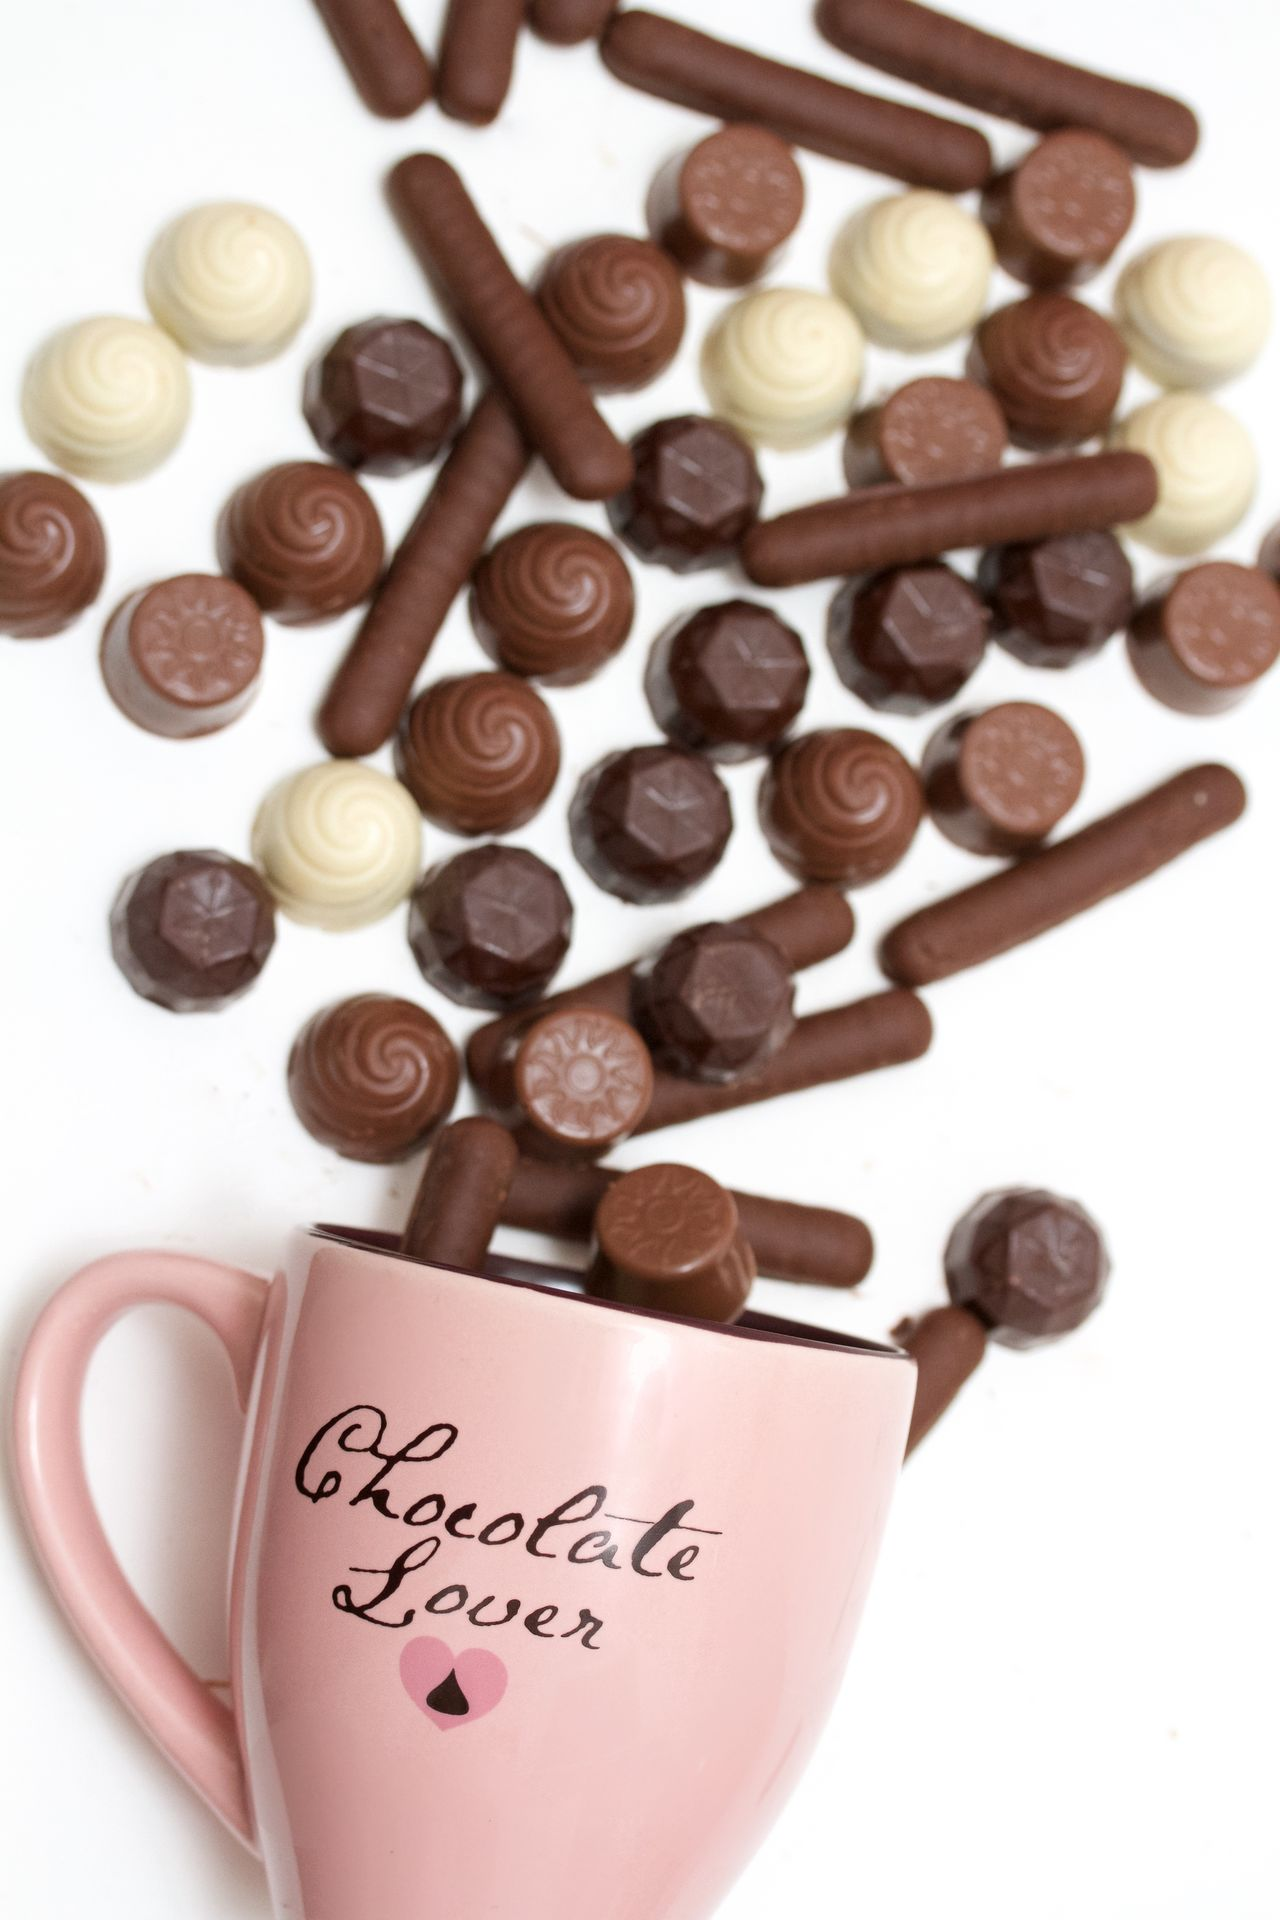 chocolate truffles and a pink mug on white background Chocolate Close-up Large Group Of Objects No People Pink Pink Mug Truffles White Background